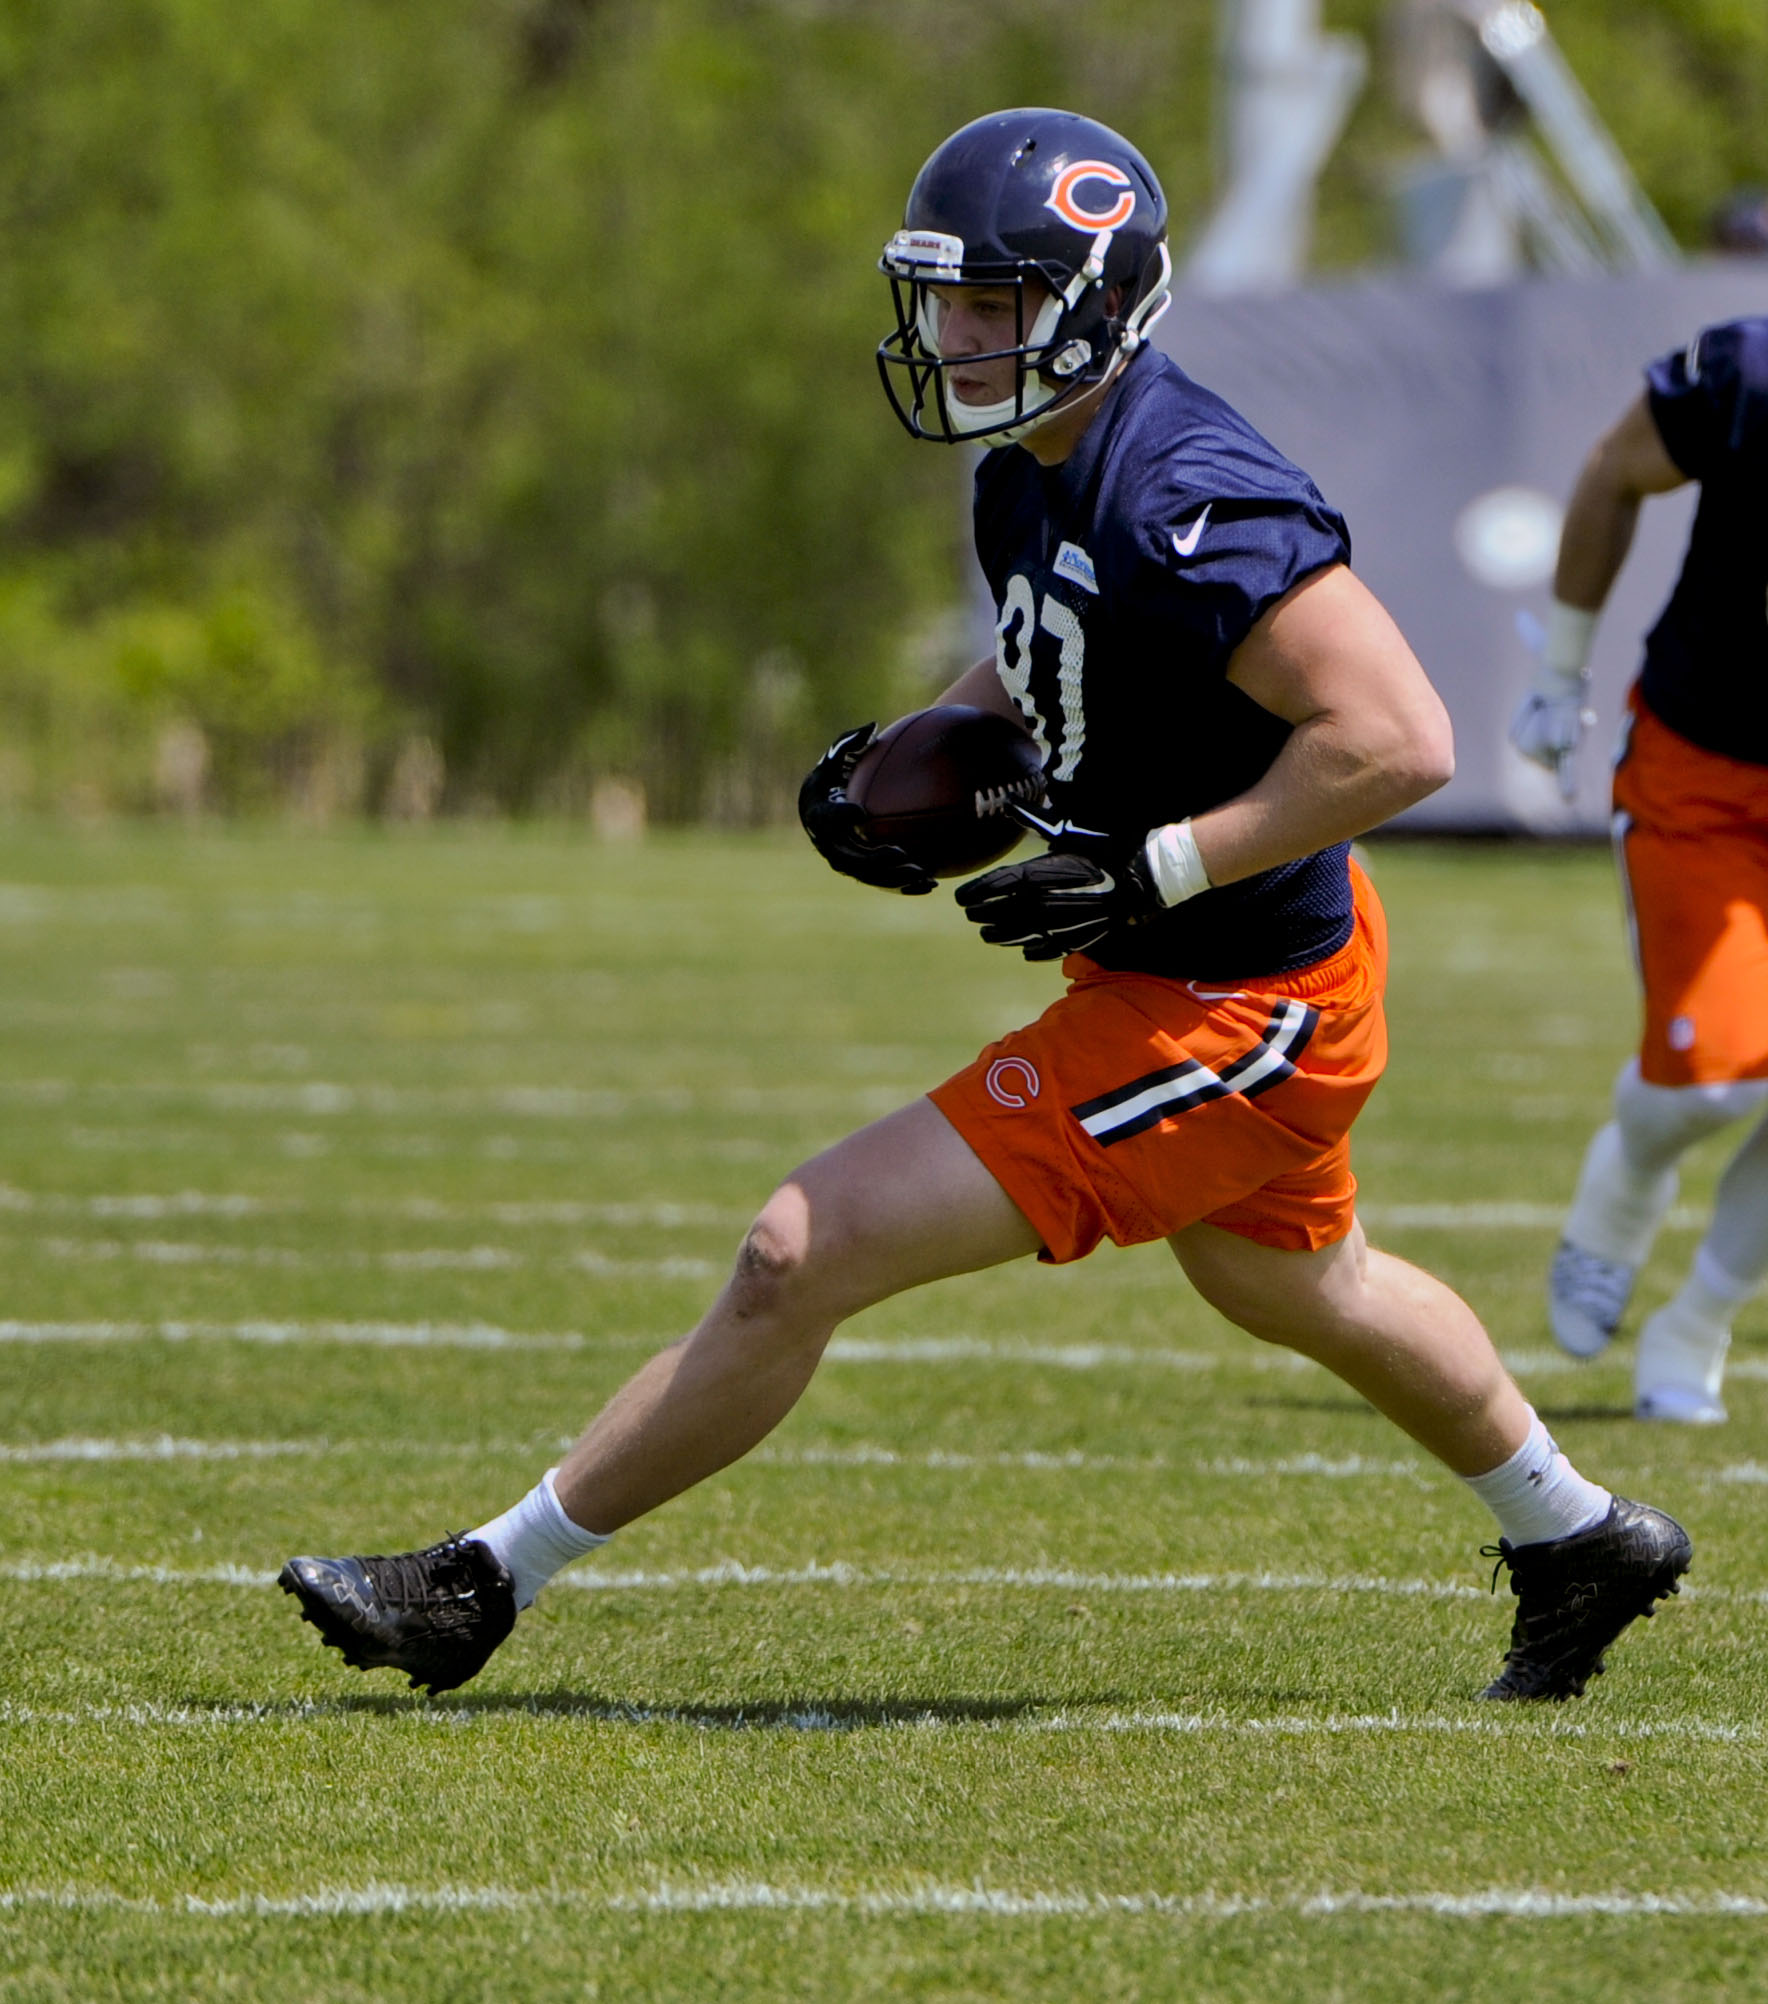 NFL: Chicago Bears-Rookie Minicamp